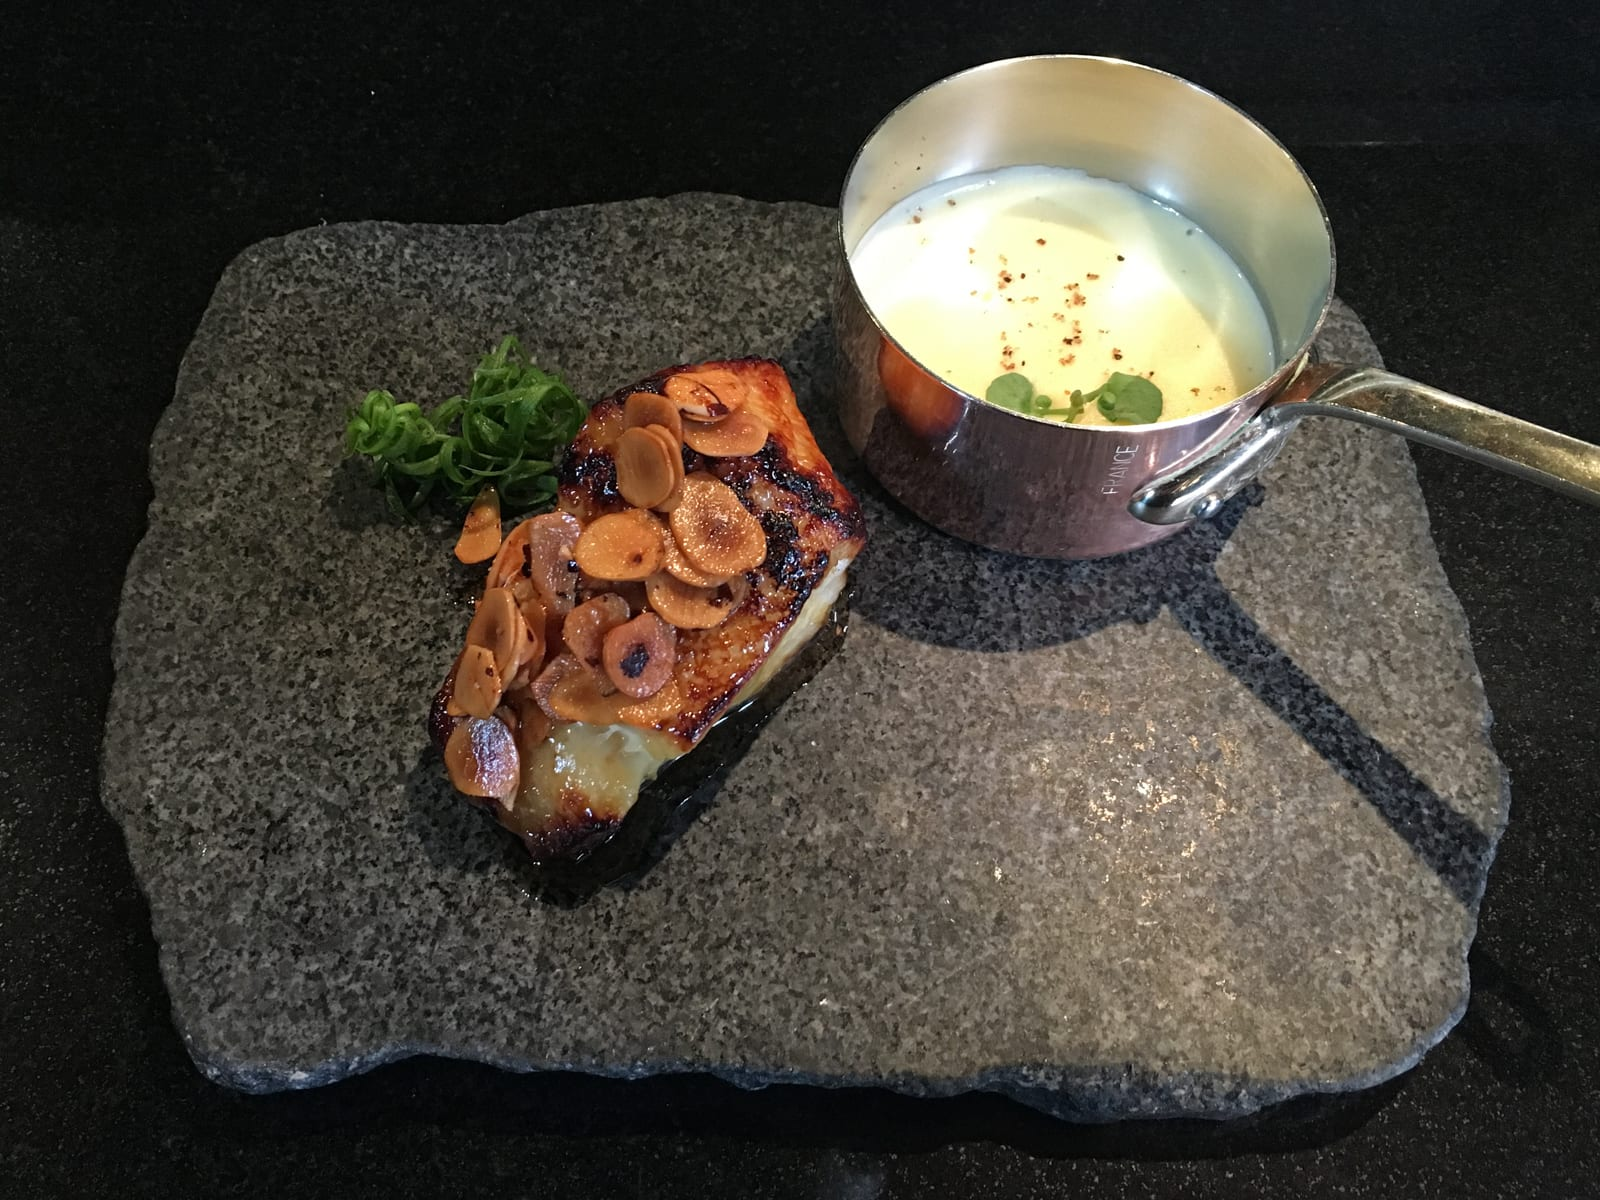 Cod marinated in miso with potato cream at Maido, the best restaurant in Lima, Peru